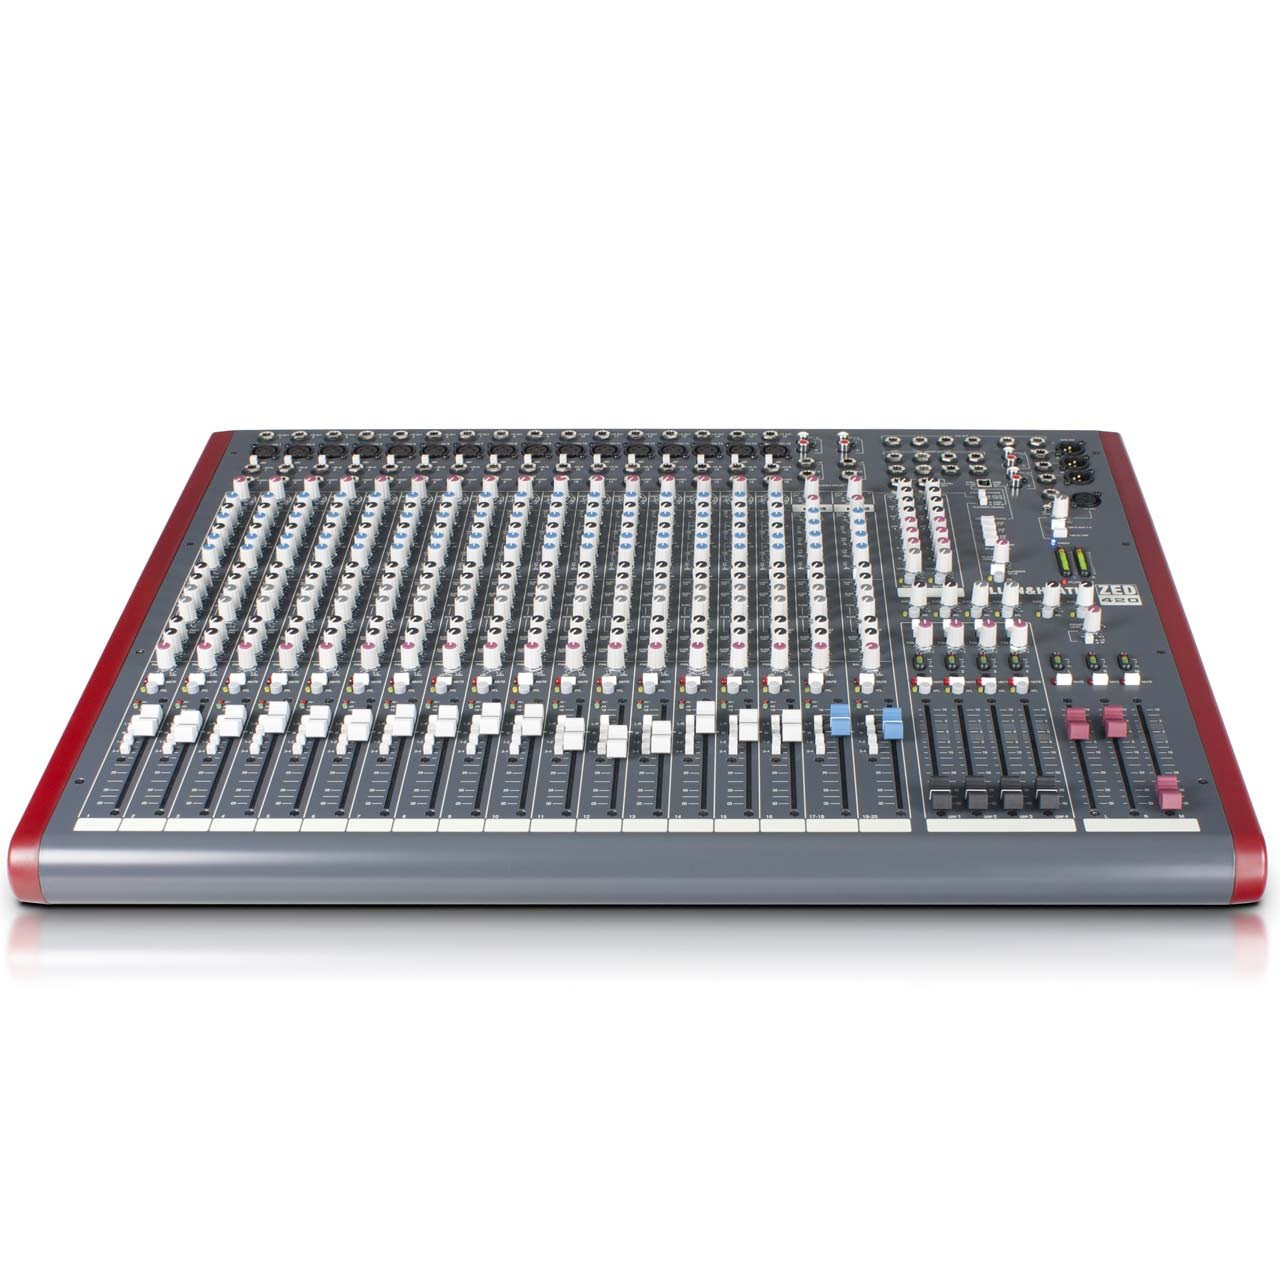 Analog Mixers - Allen & Heath ZED-420 - Analogue Mixer With USB